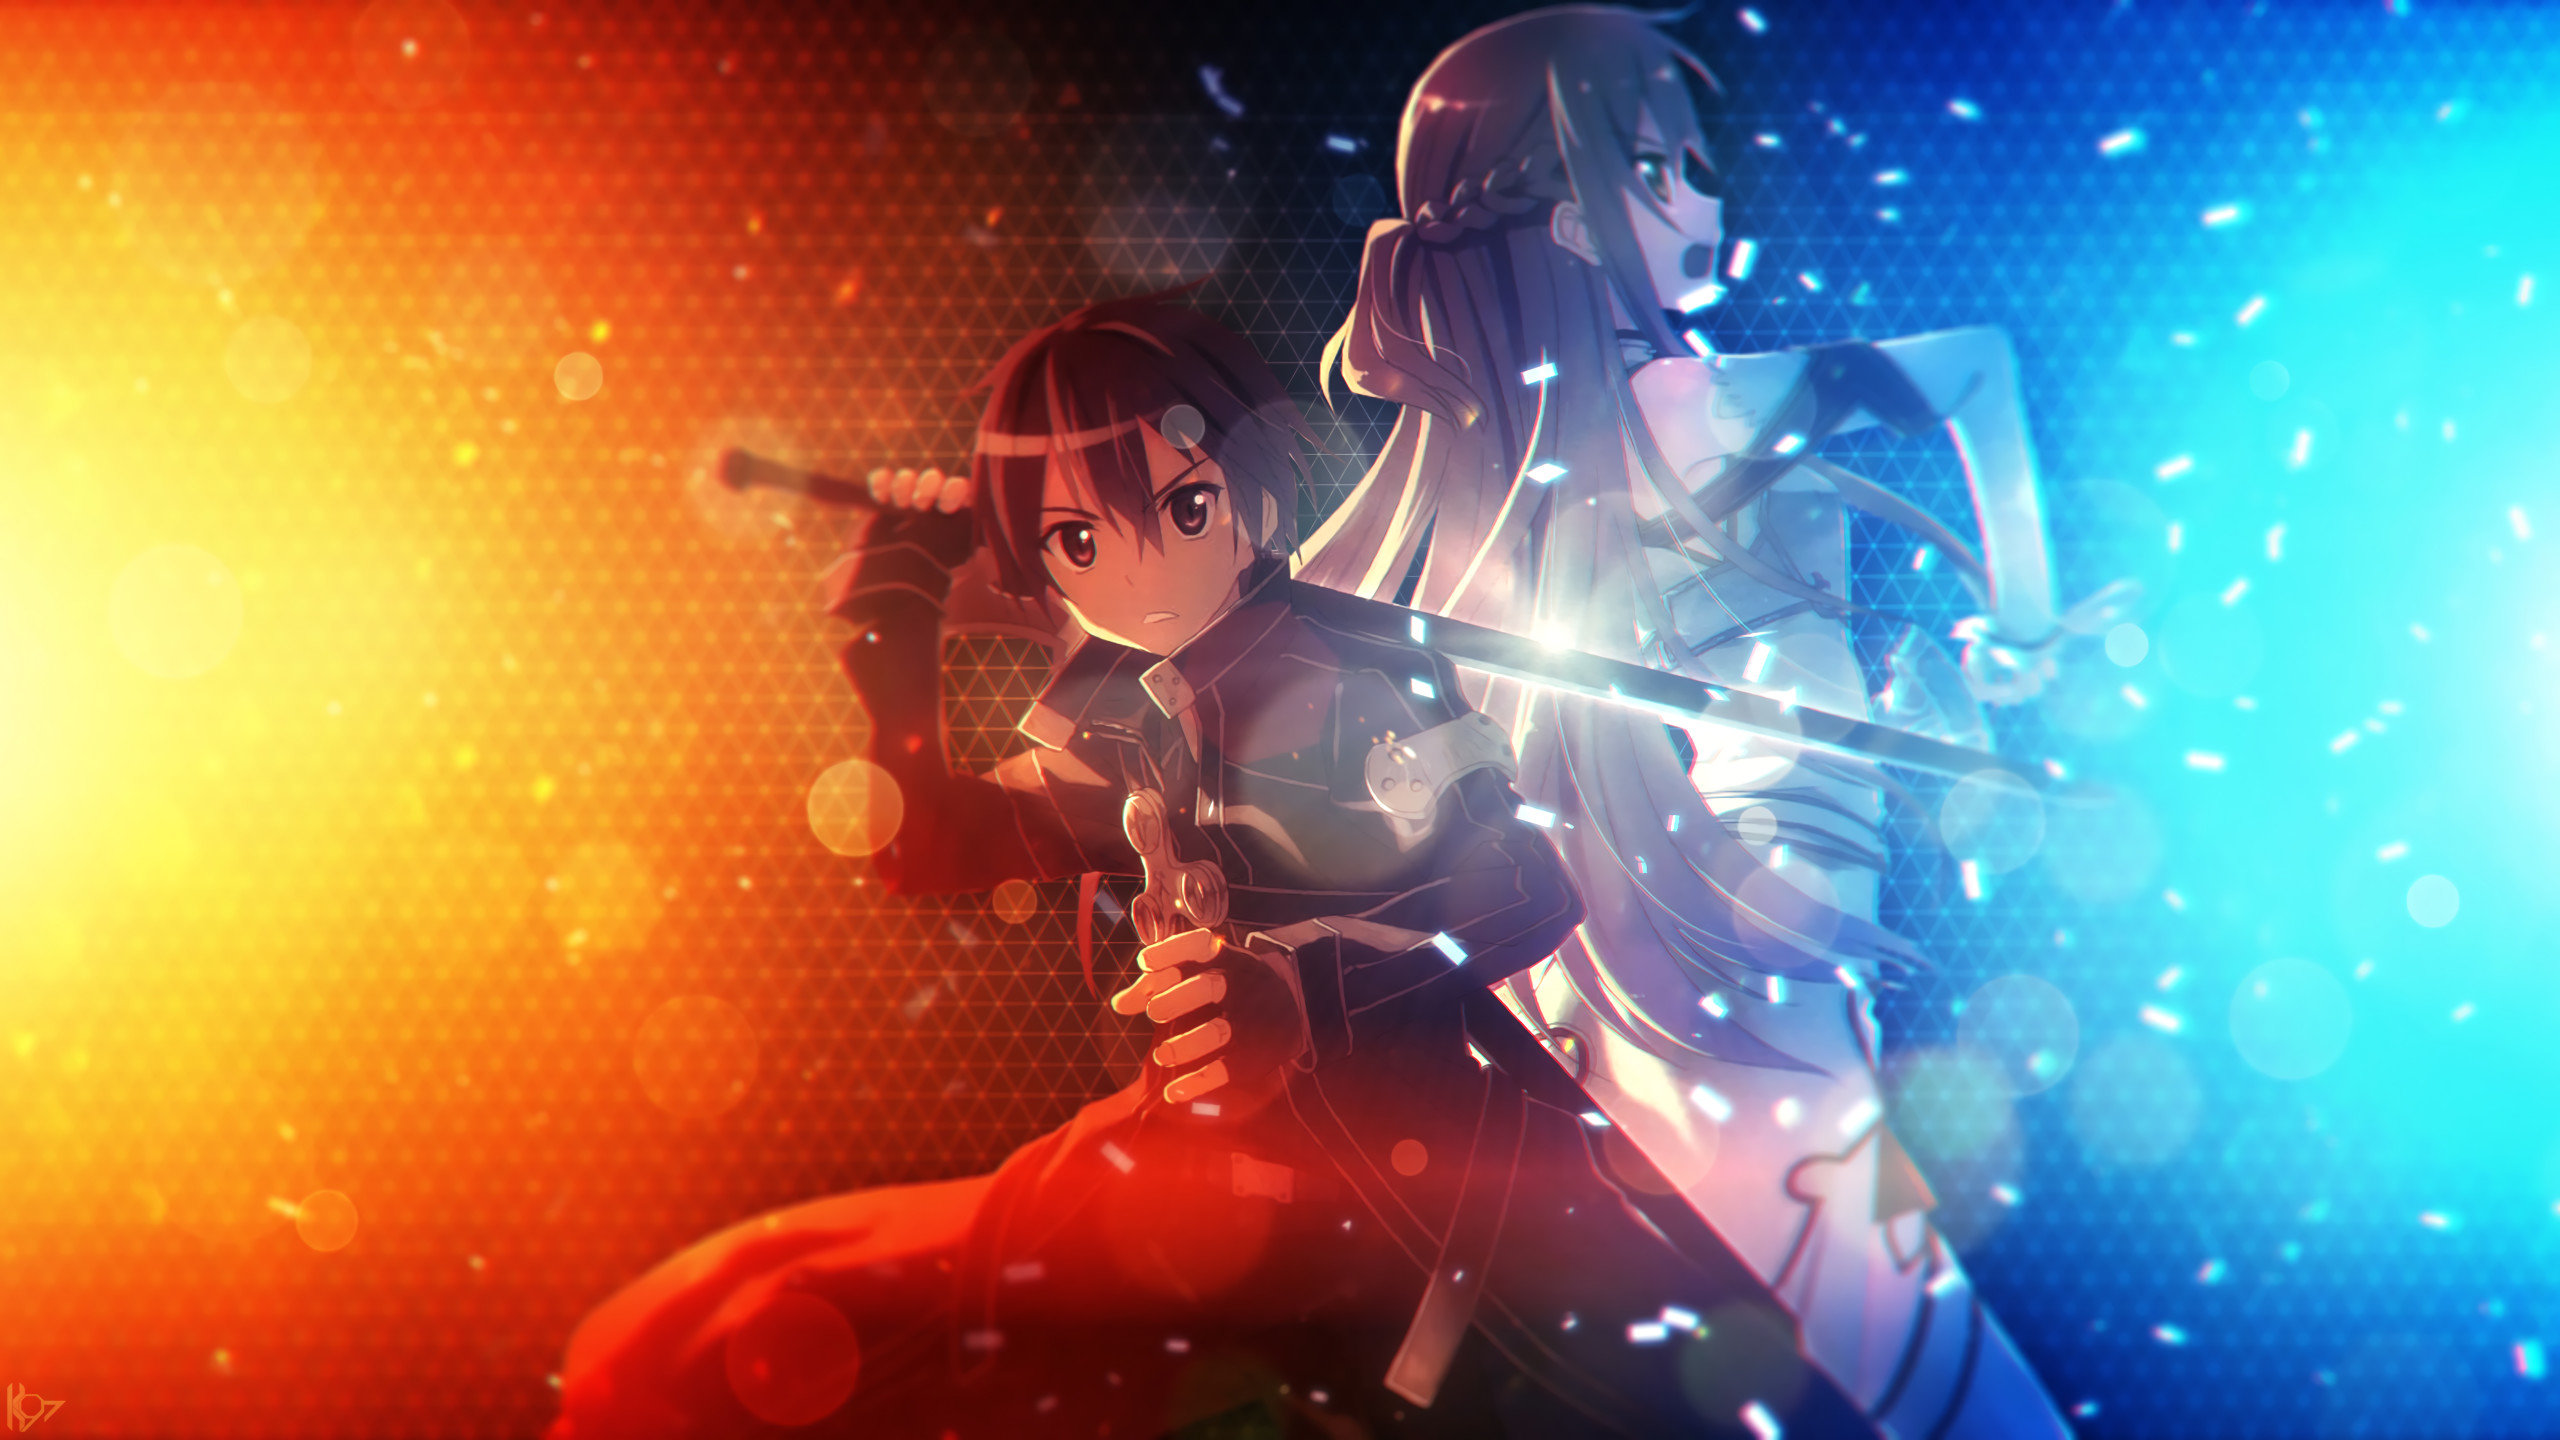 Sword Art Online Background: Asuna Yuuki Wallpapers 2560x1440 Desktop Backgrounds